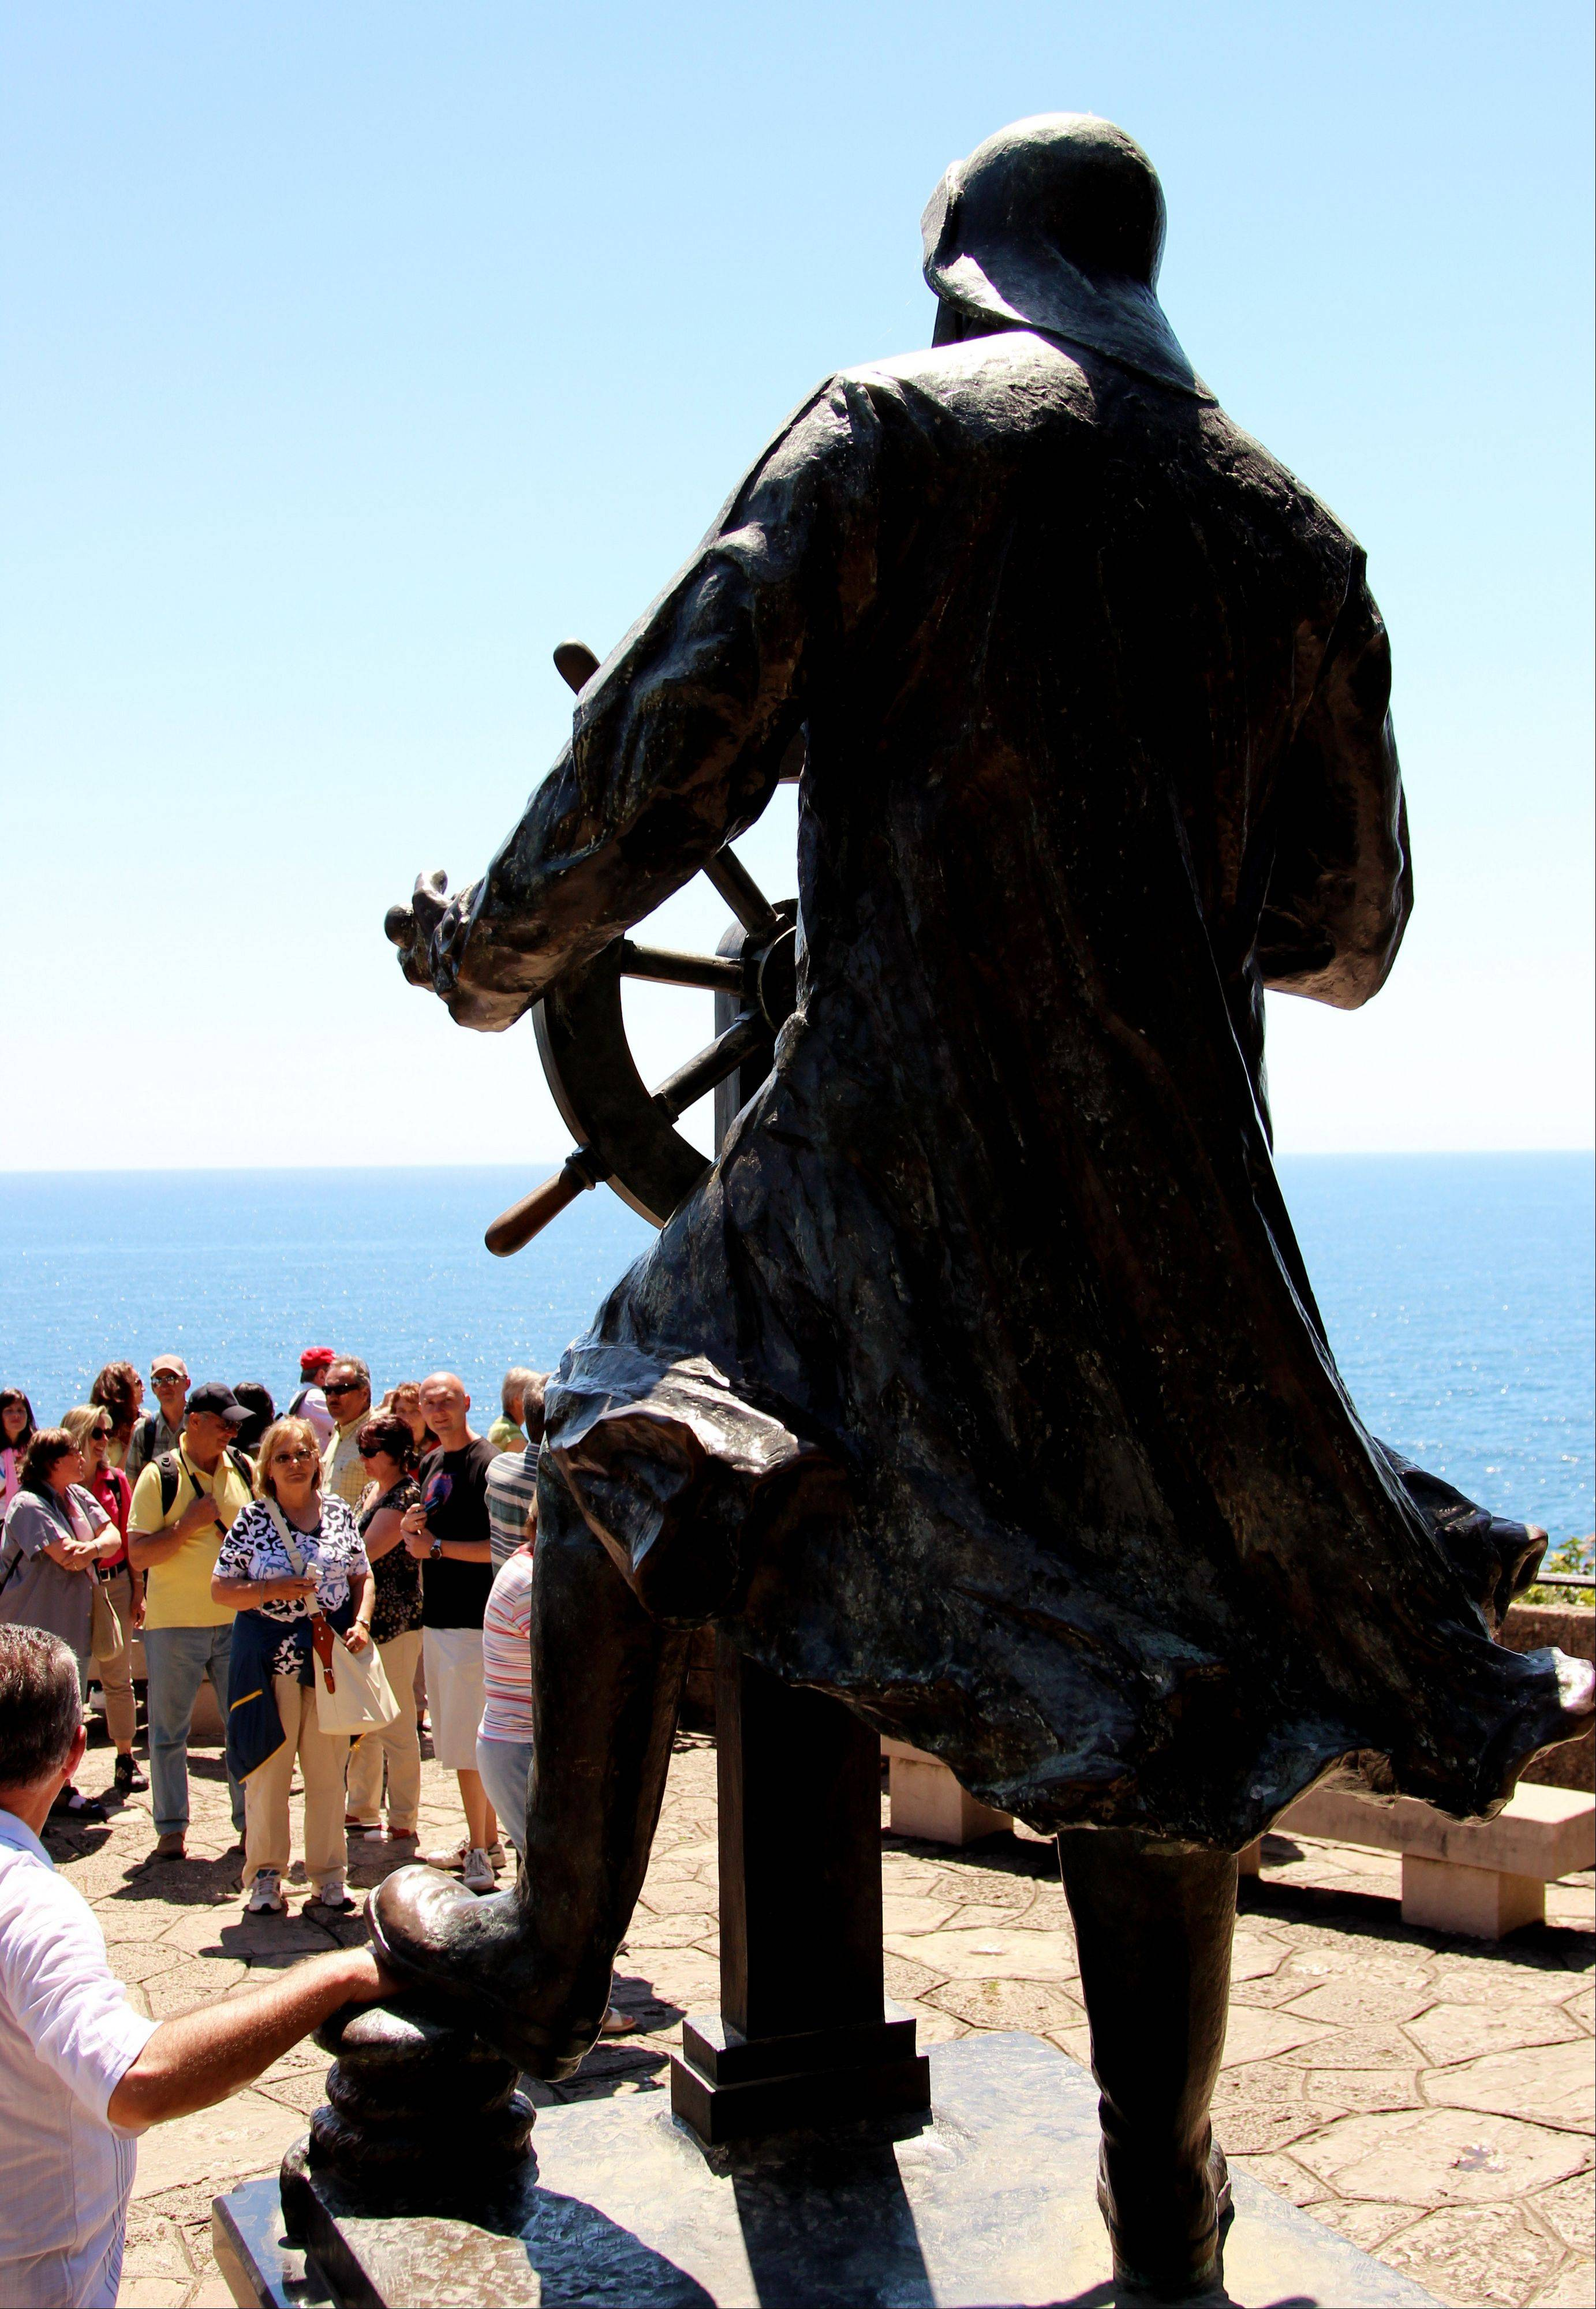 Tourists check out a larger-than-life statue of Albert I, an oceanographer who served as prince of Monaco from 1889 until his death in 1922. The statue is part of the St. Martin Gardens, which is free to visit and makes a nice place to stroll, with views of the Mediterranean.